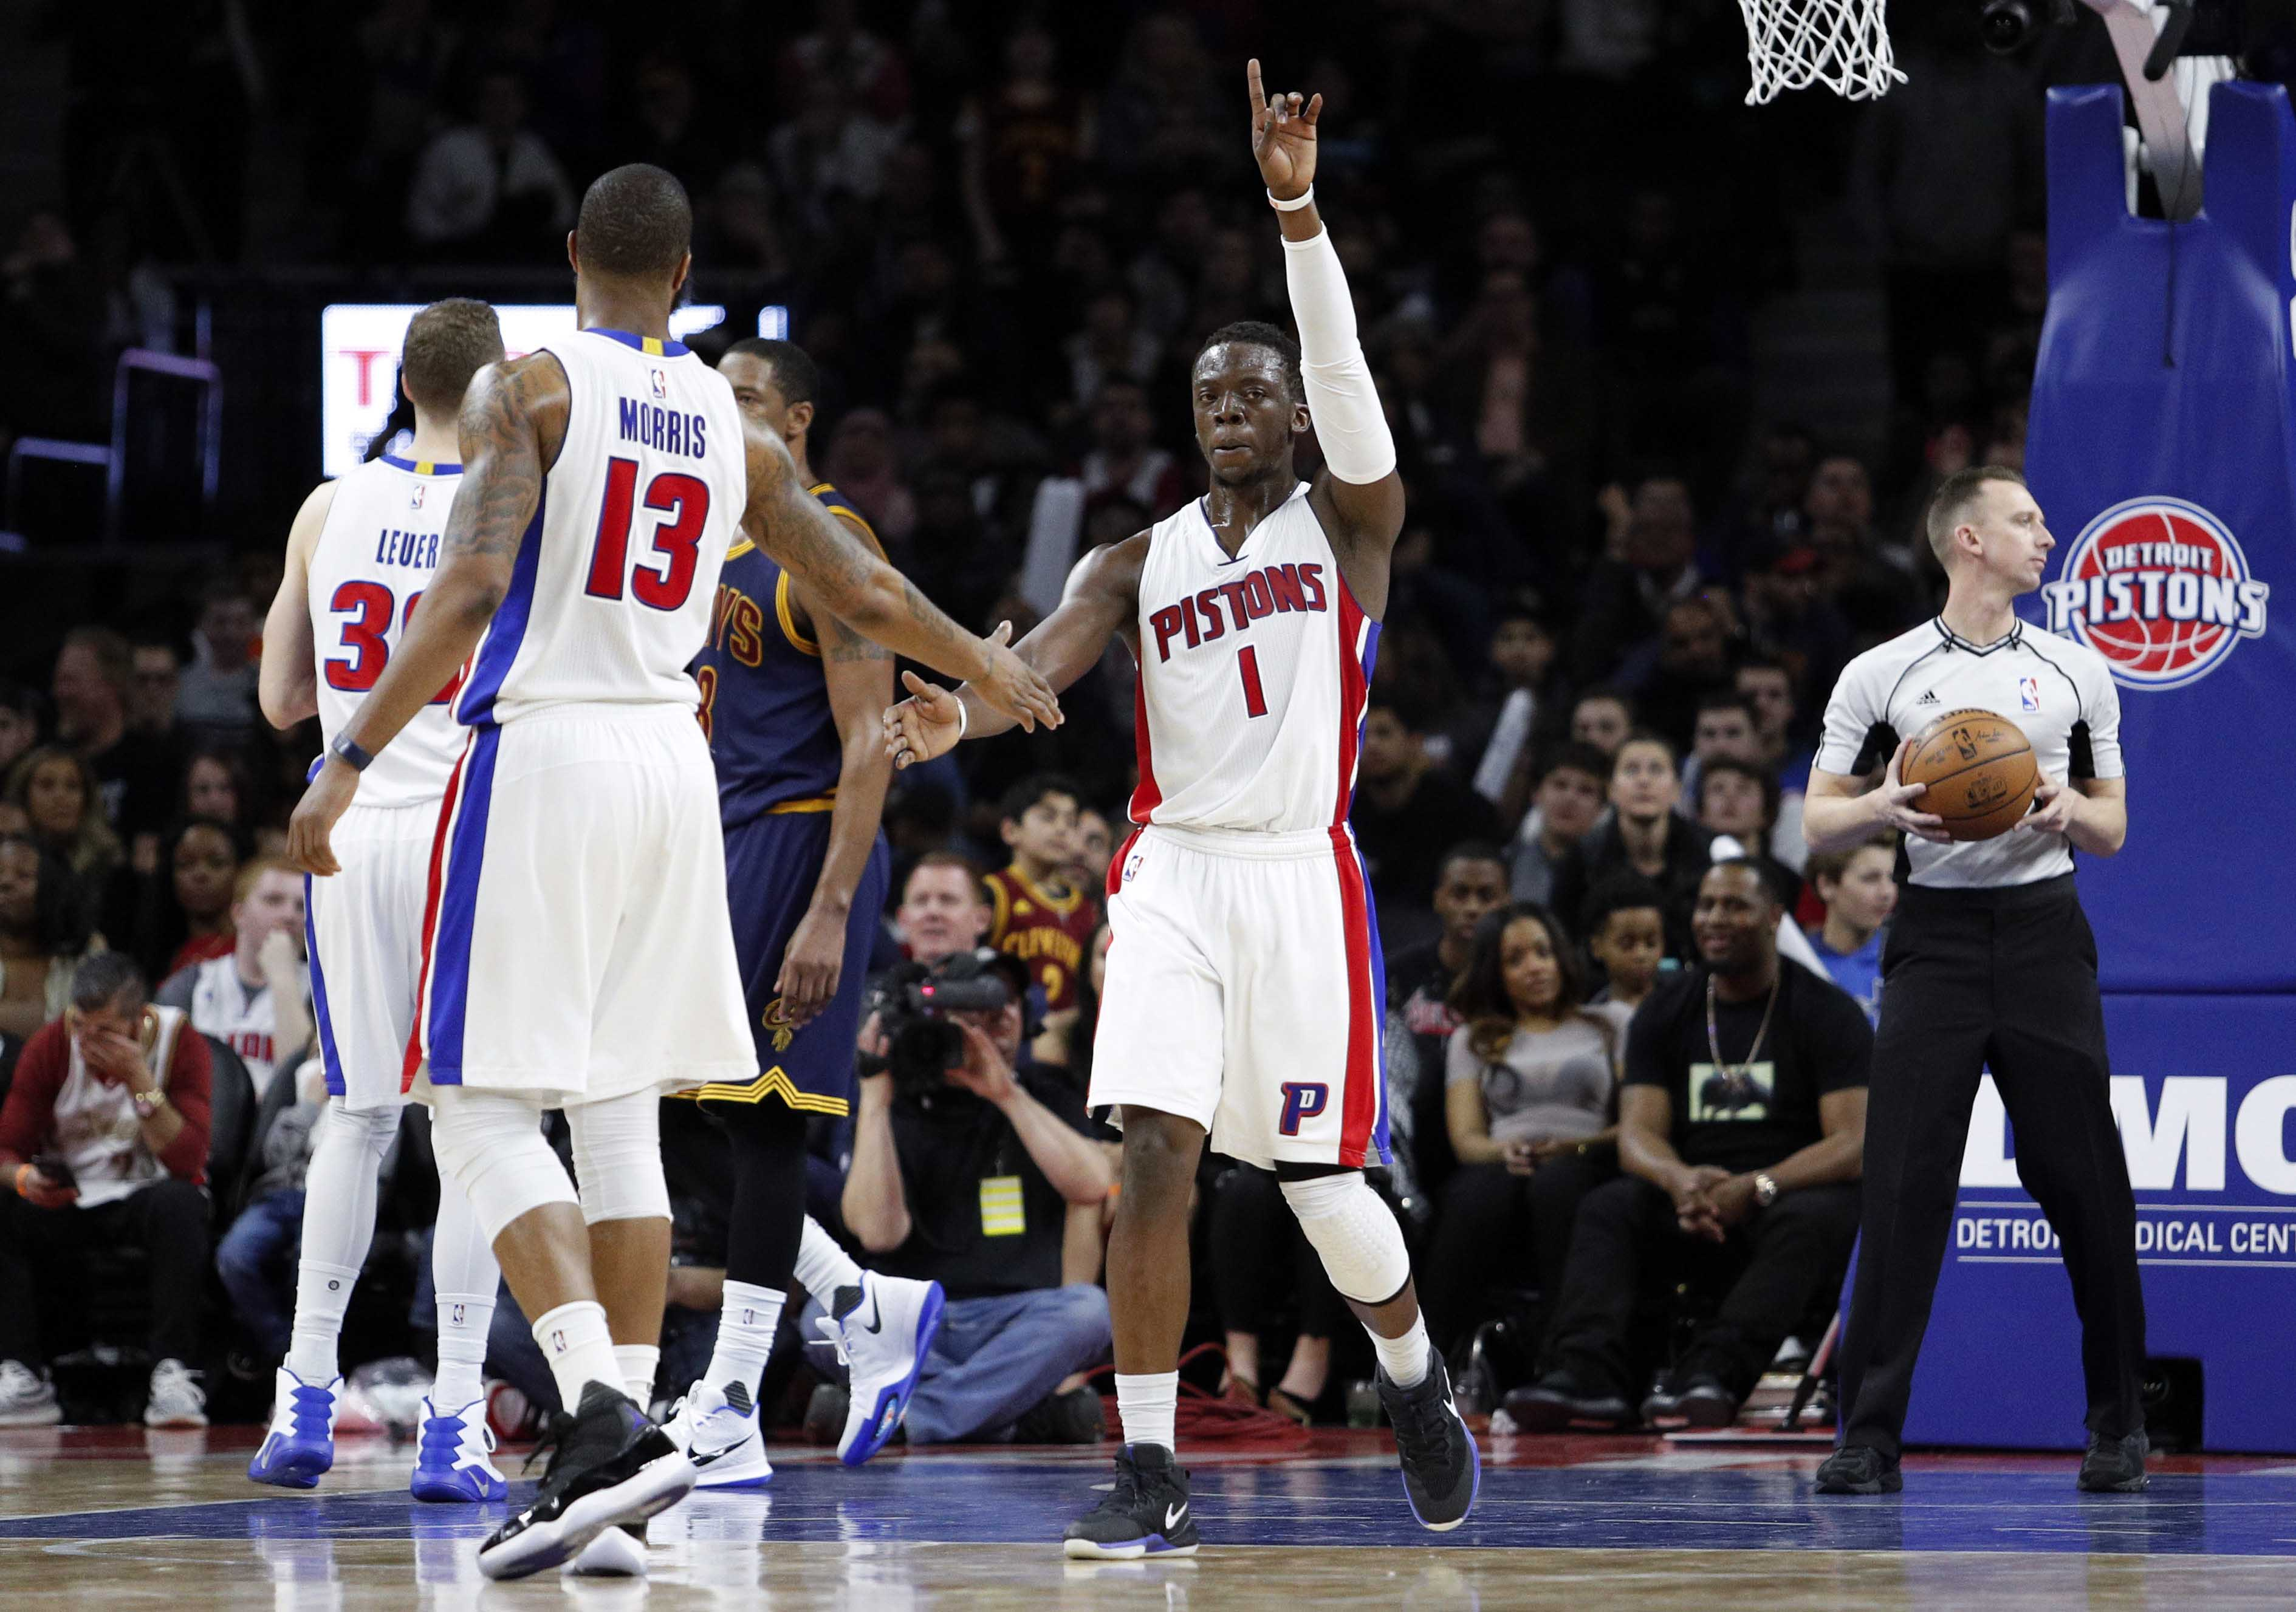 9928842-nba-cleveland-cavaliers-at-detroit-pistons